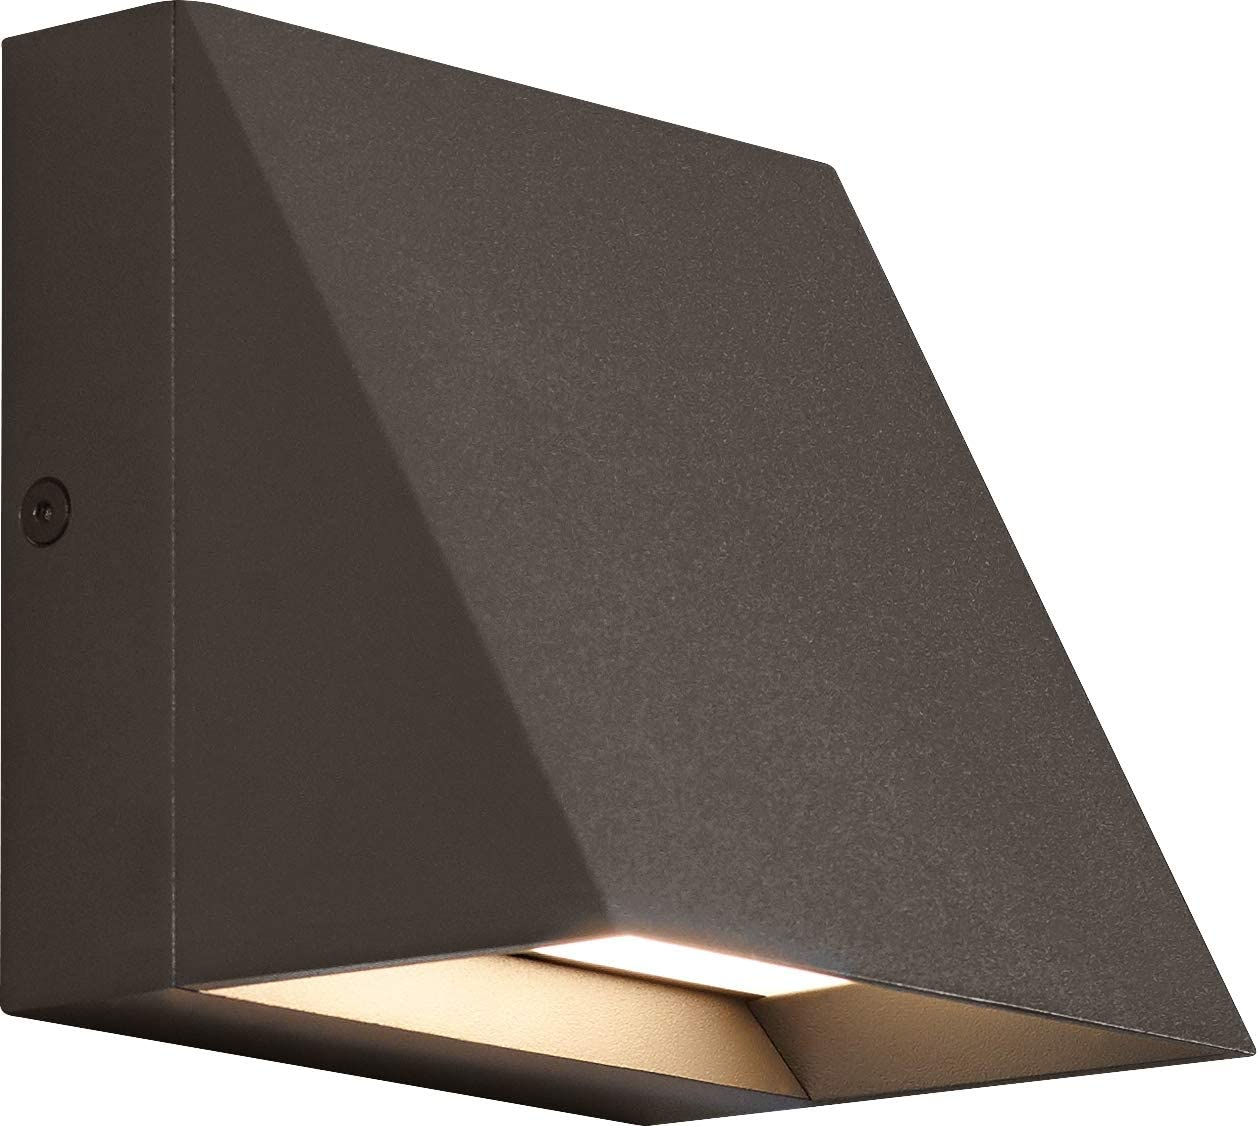 Tech Lighting 700WSPITSZ-LED830 Pitch Outdoor Wall Sconce, 1-Light LED 26 Watts, Bronze